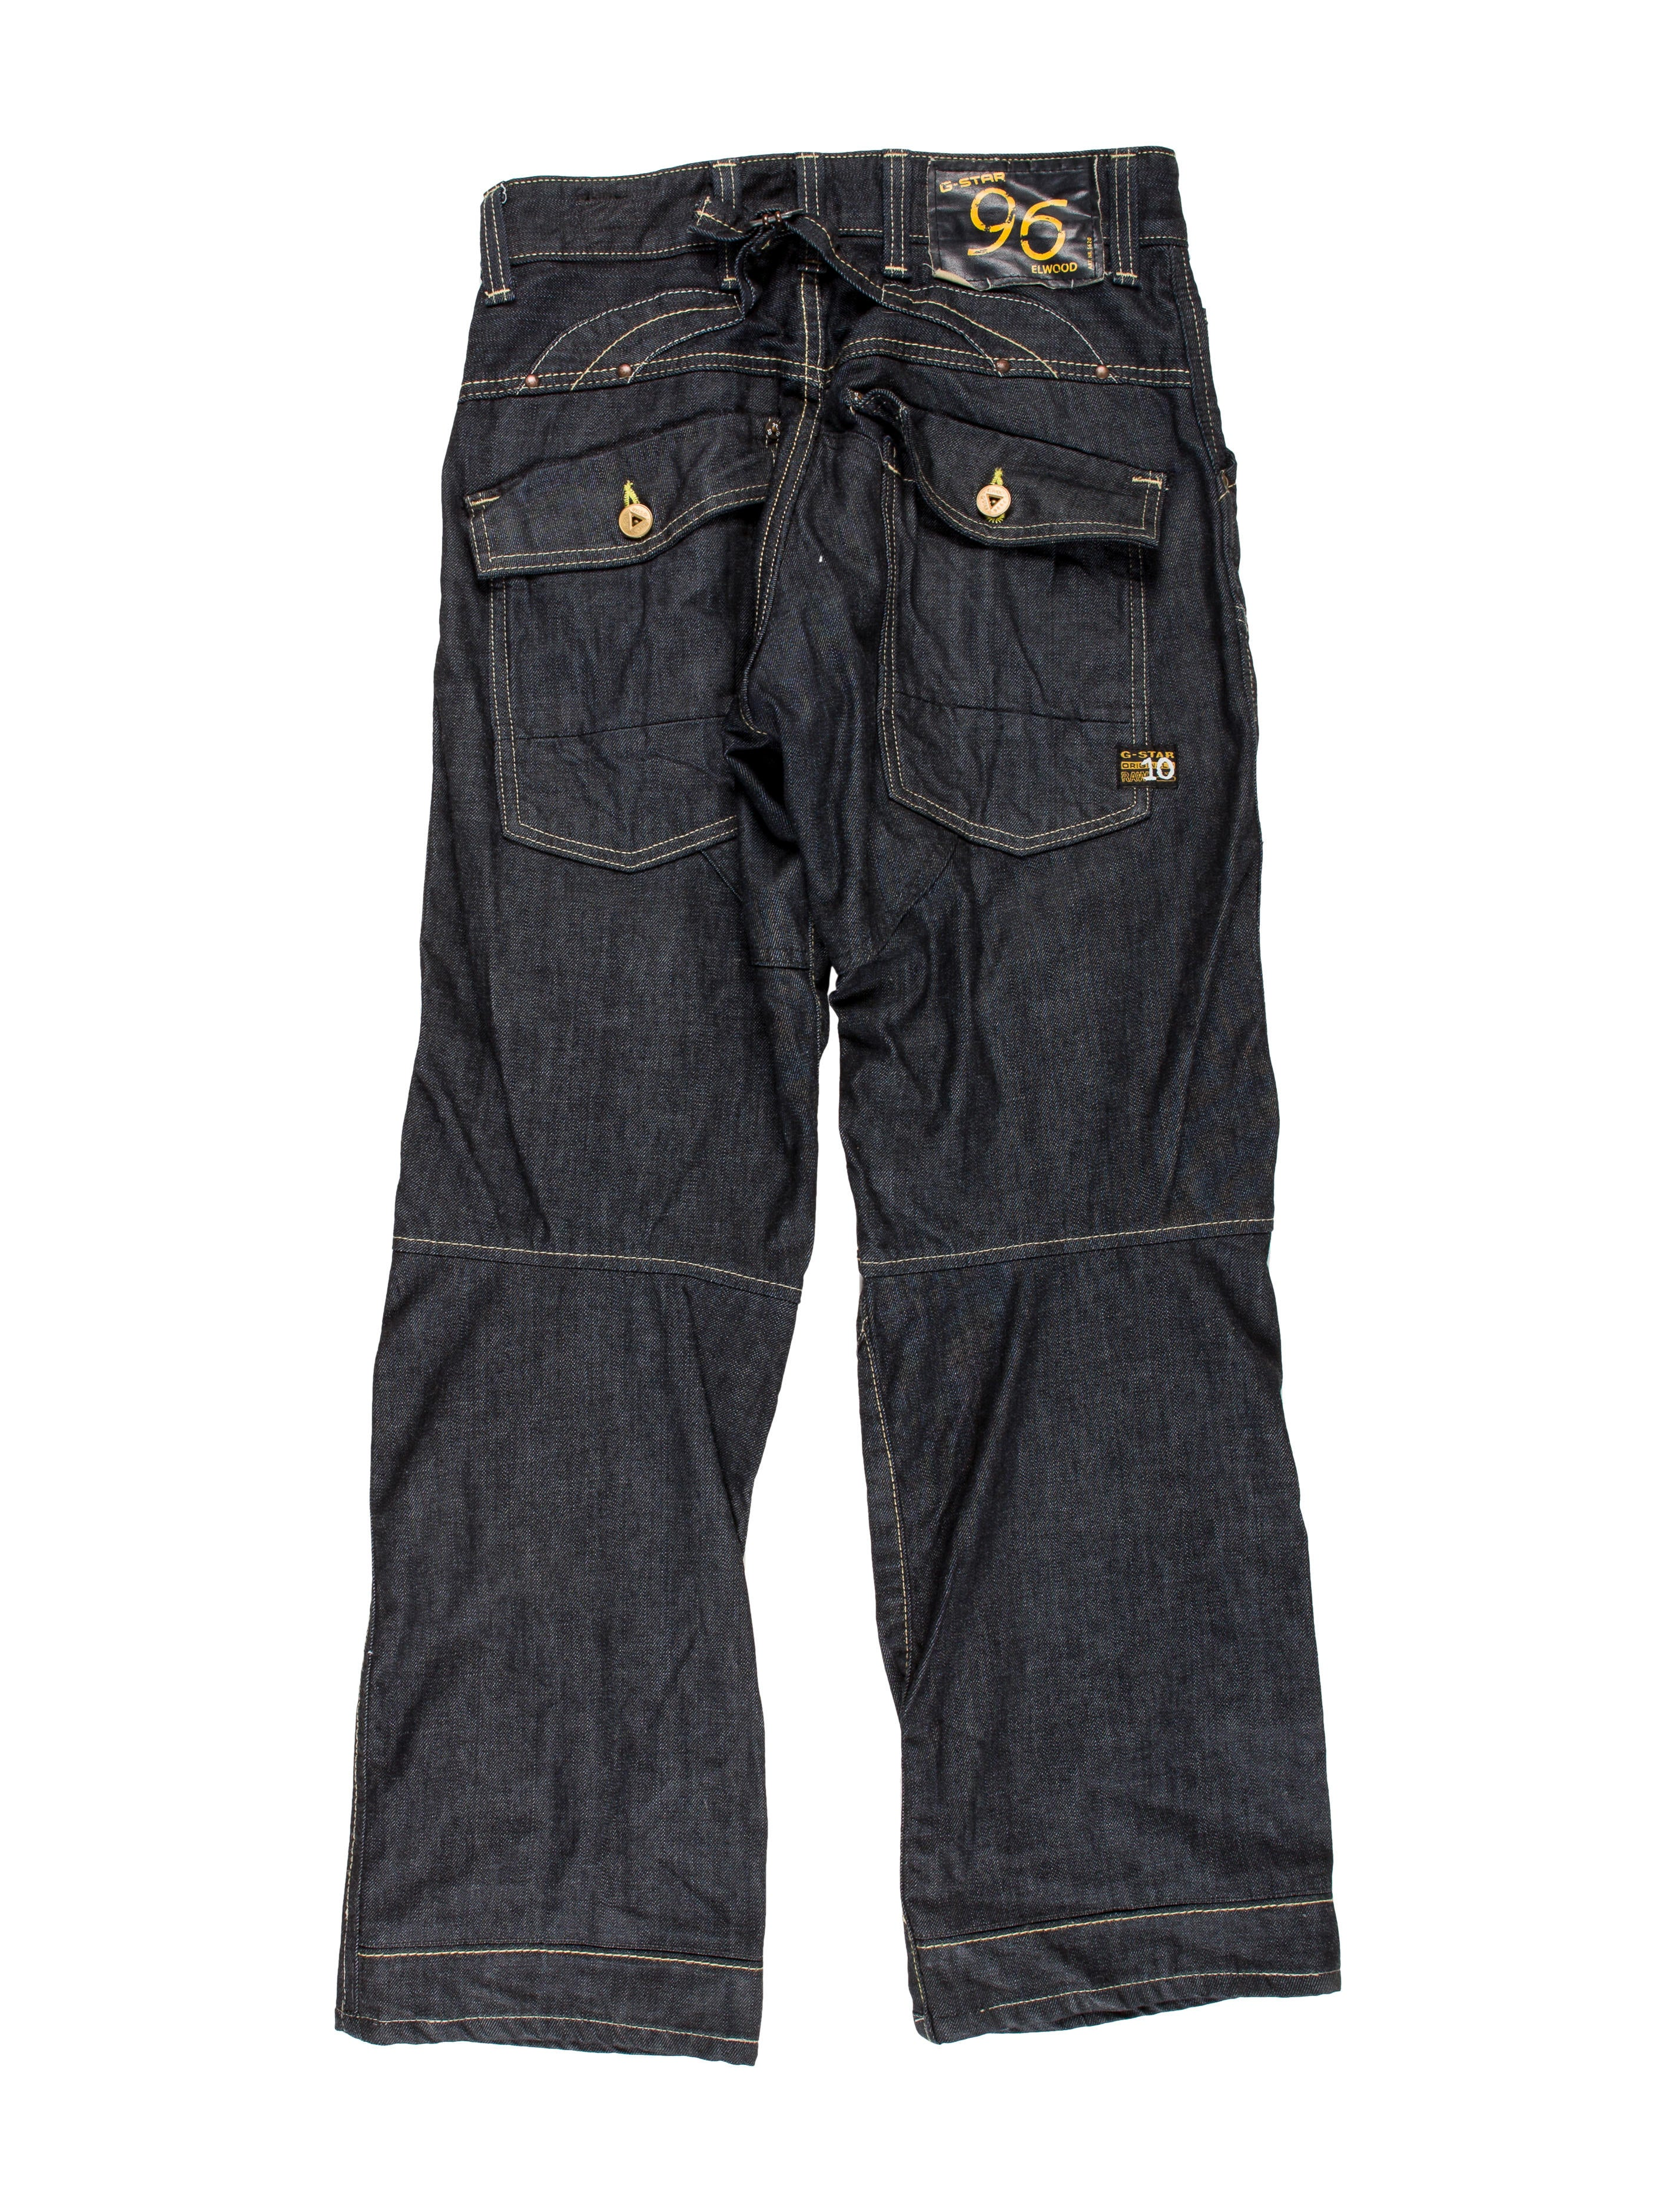 g star raw elwood 5620 jeans clothing wgsrw20050 the realreal. Black Bedroom Furniture Sets. Home Design Ideas